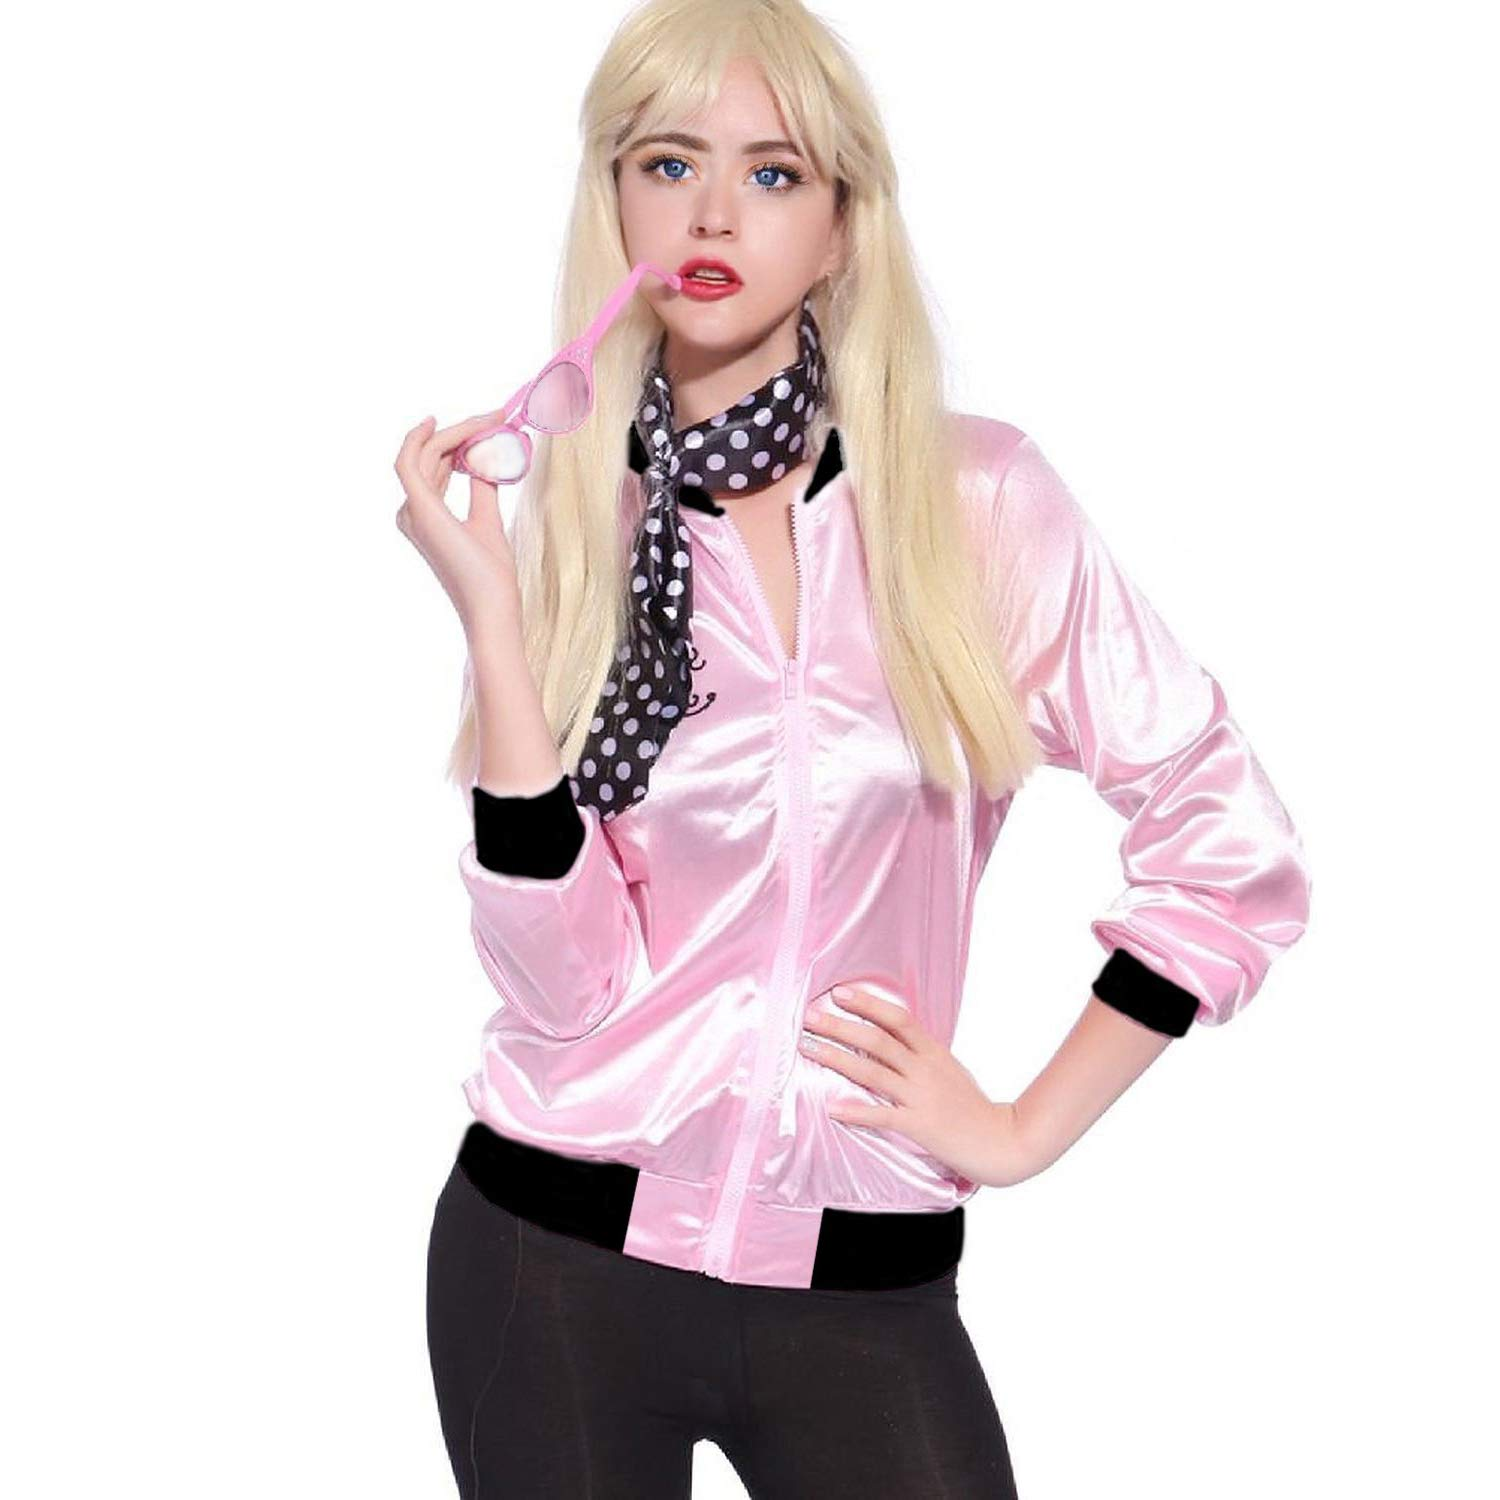 b5d26d916c Amazon.com  Tdmall 50 s Costume Party Lady Jacket Adult Standard Pink with  Scarf  Clothing